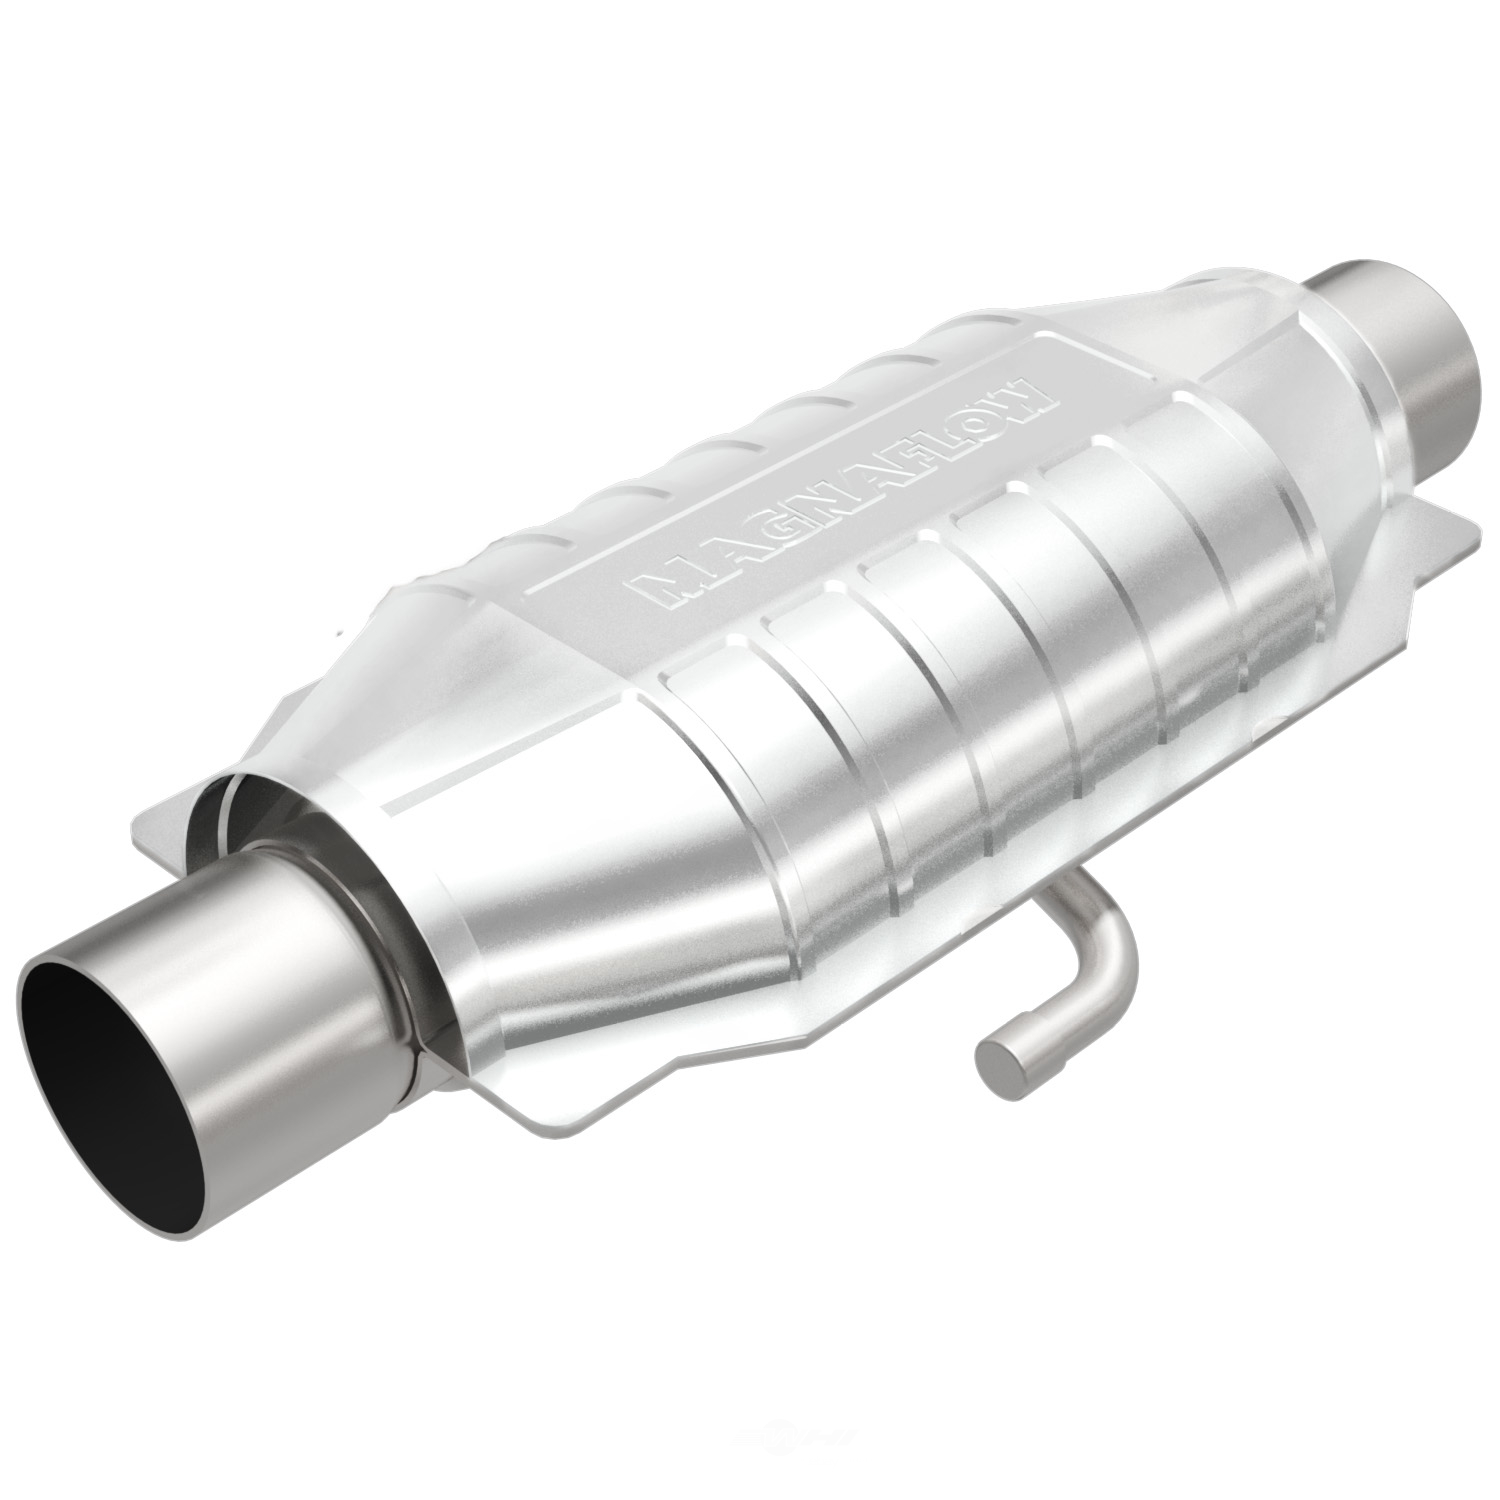 MAGNAFLOW CARB COMPLIANT CONVERTER - 2.50in. Universal California Pre-OBDII Catalytic Converter (Rear) - MFC 334016